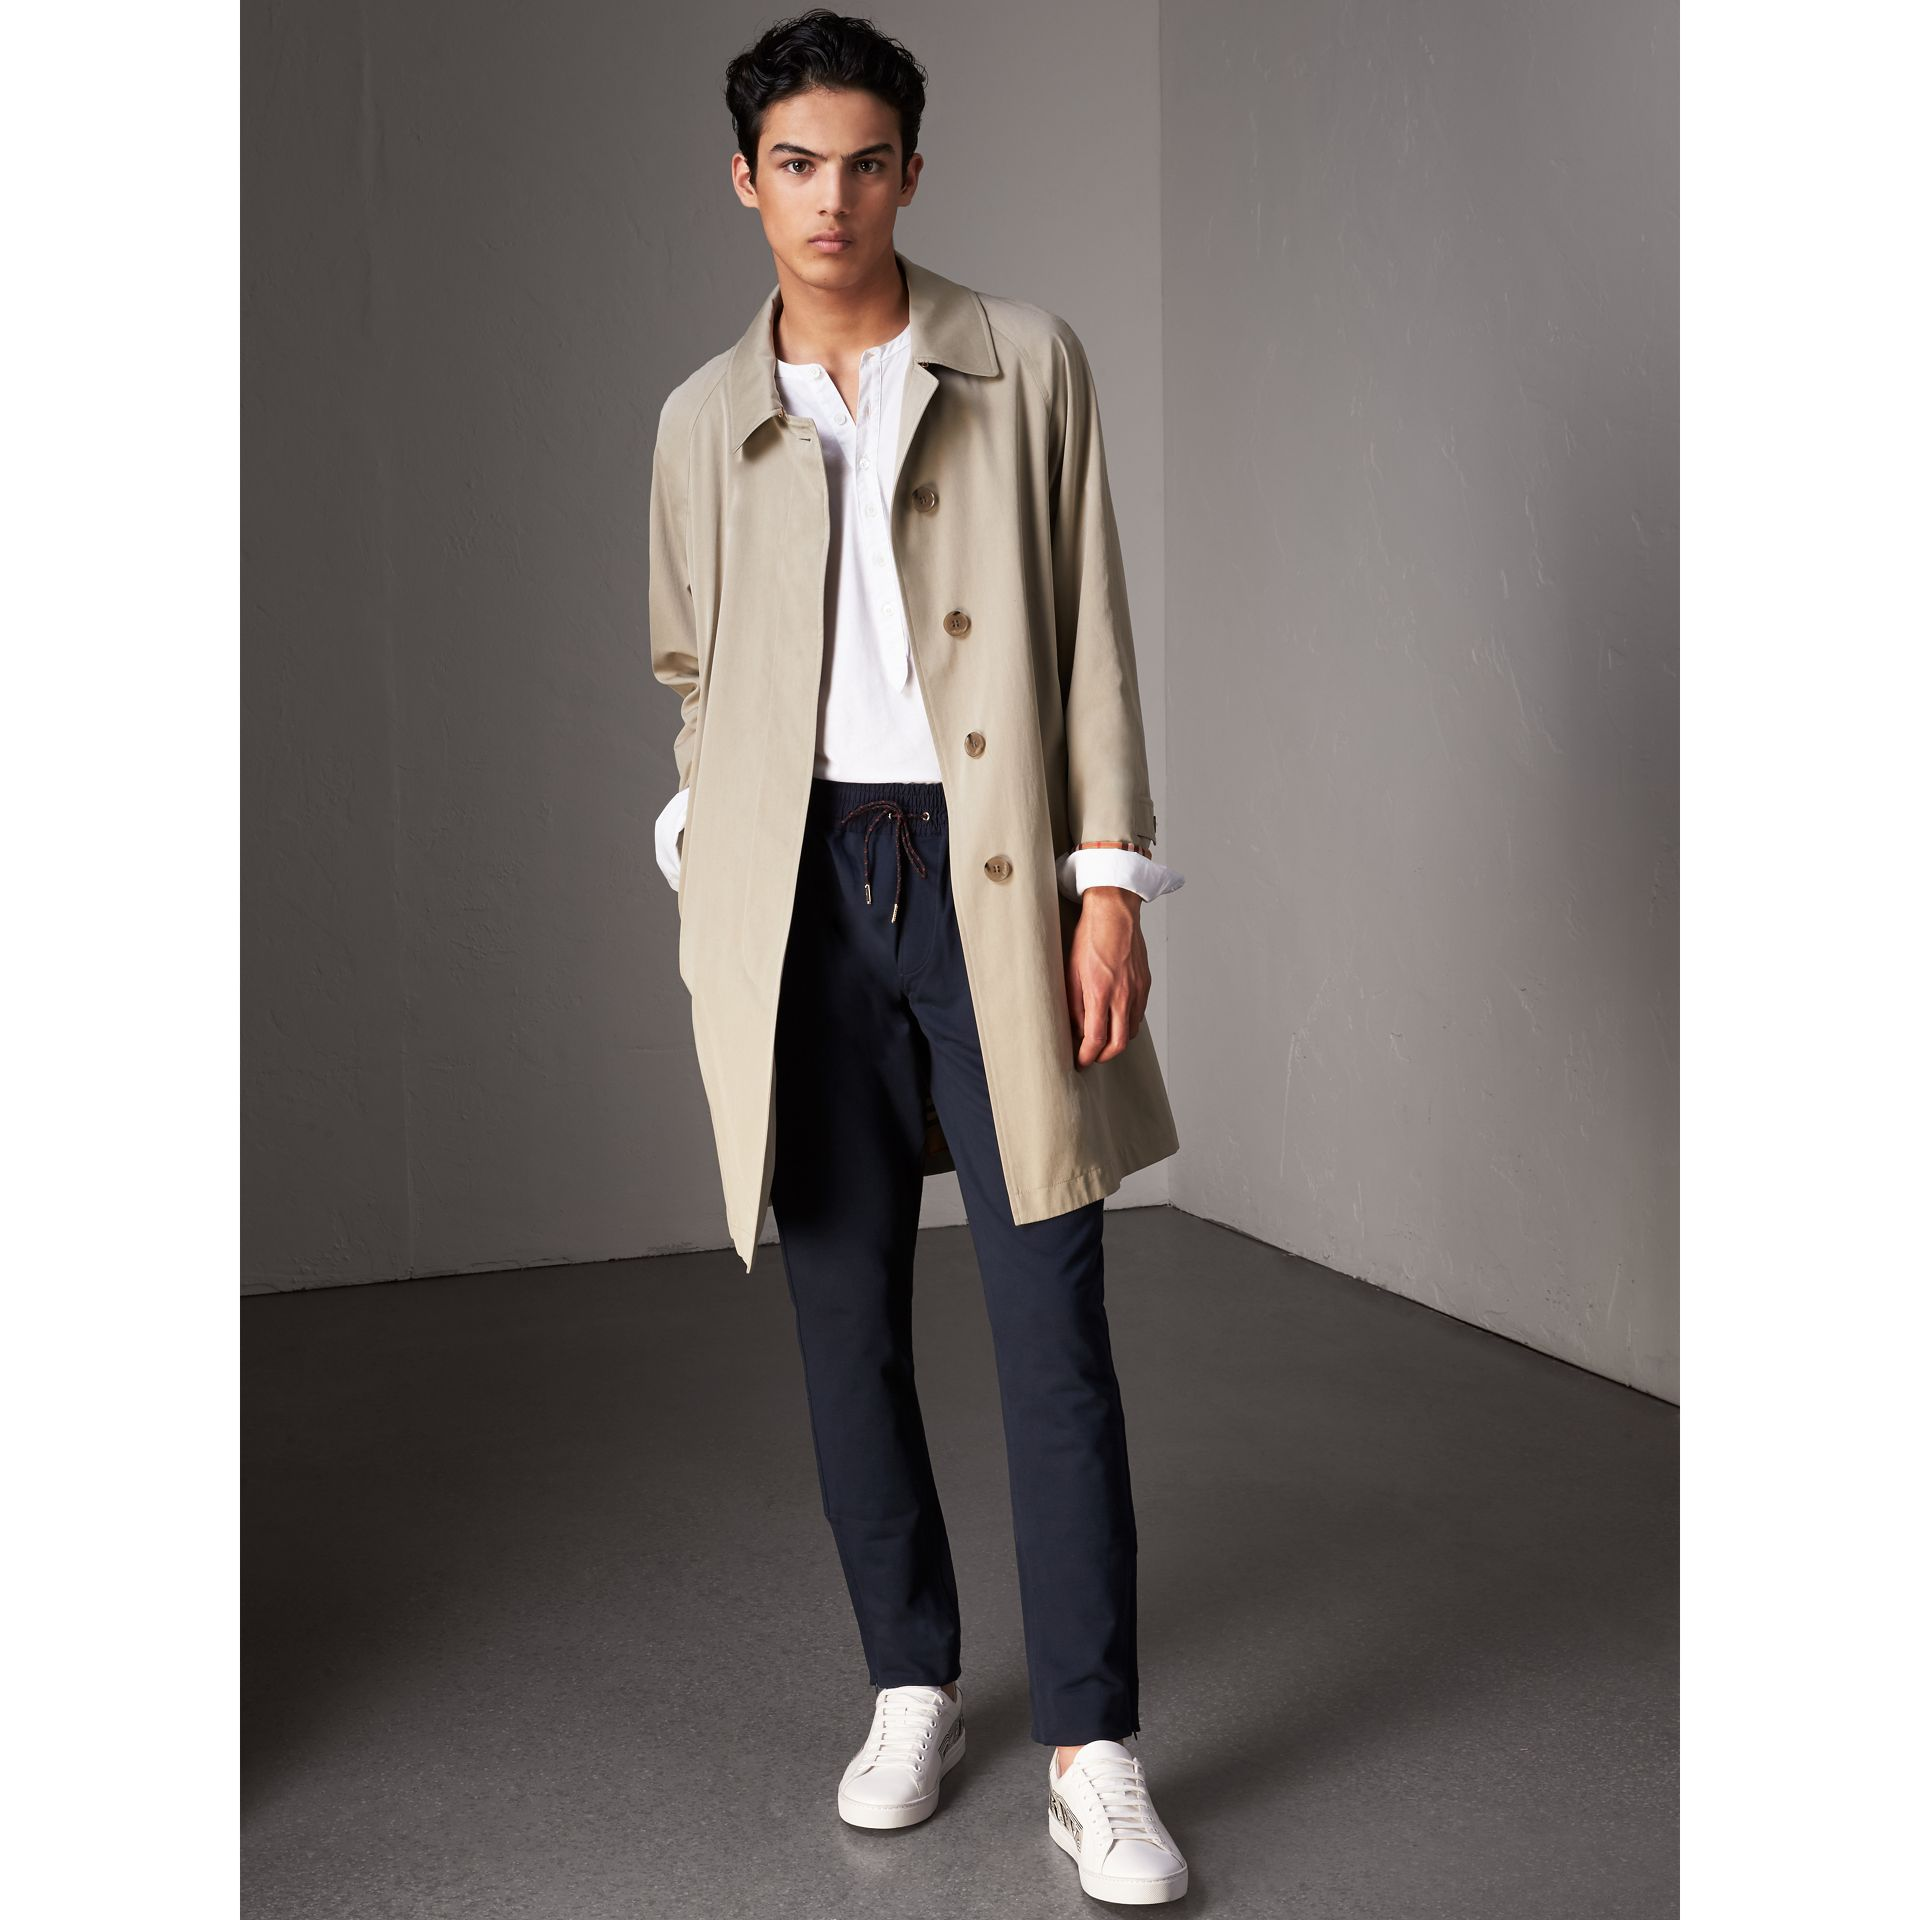 Pantalon de survêtement en coton (Marine) - Homme | Burberry - photo de la galerie 0